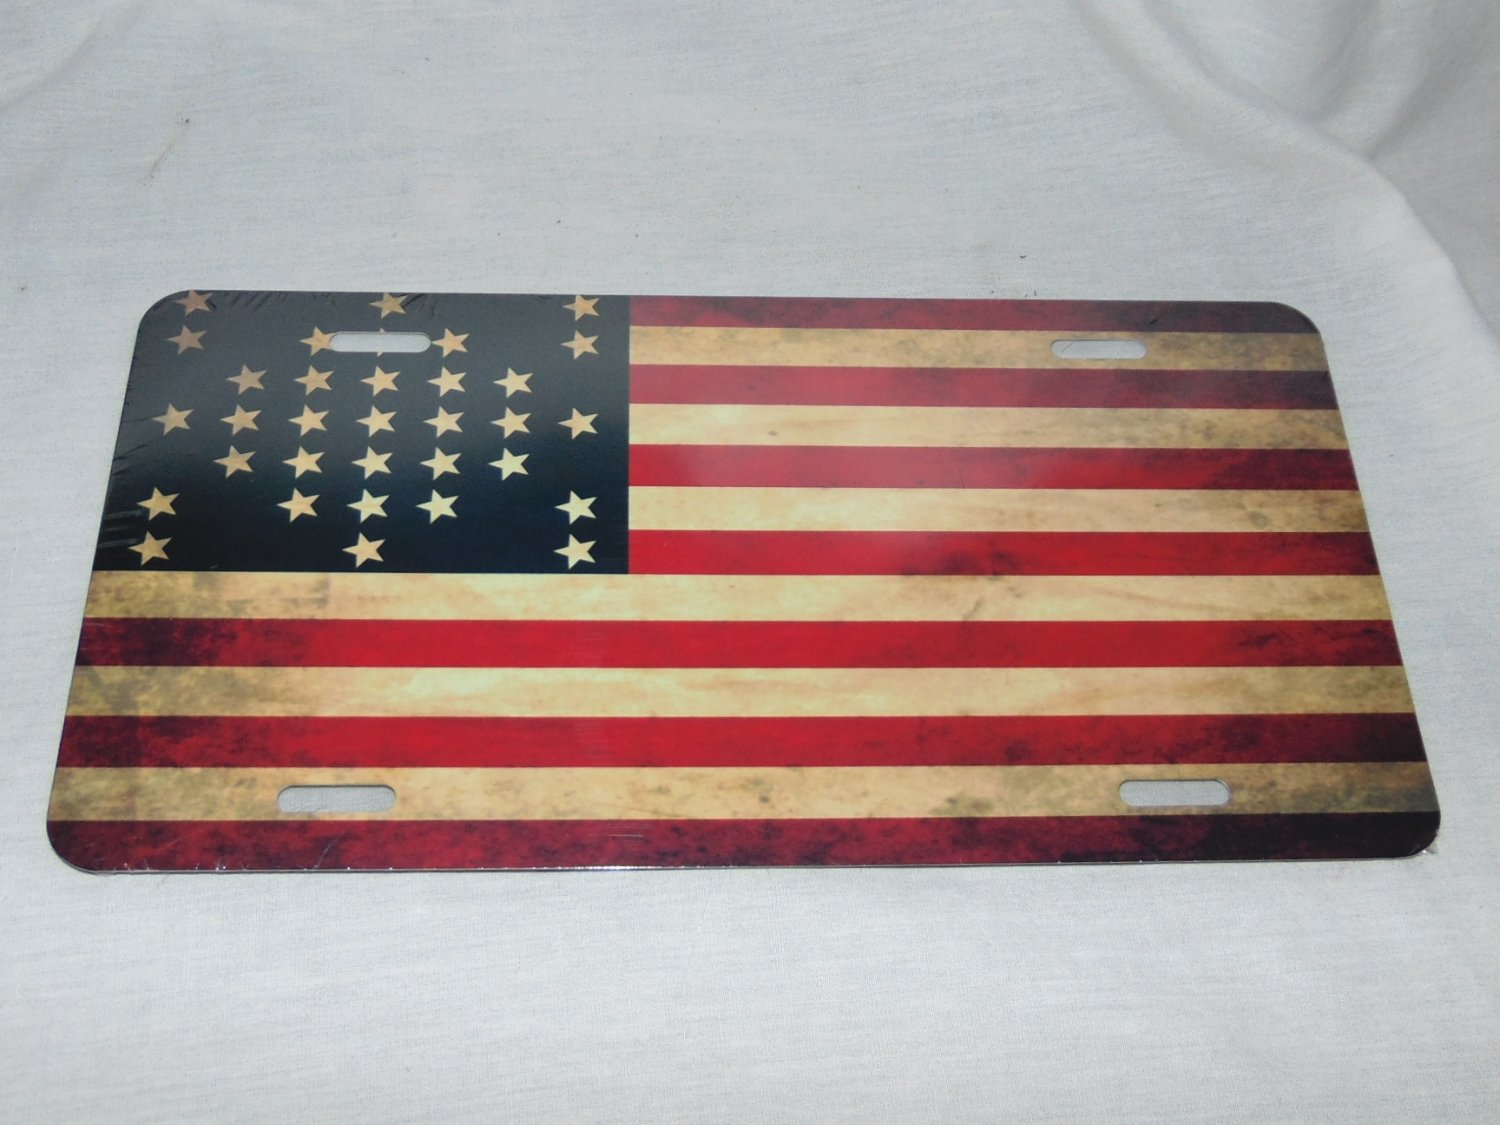 FORT SUMTER GARRISON FLAG LICENSE PLATE 6 X 12 INCHES NEW ALUMINUM